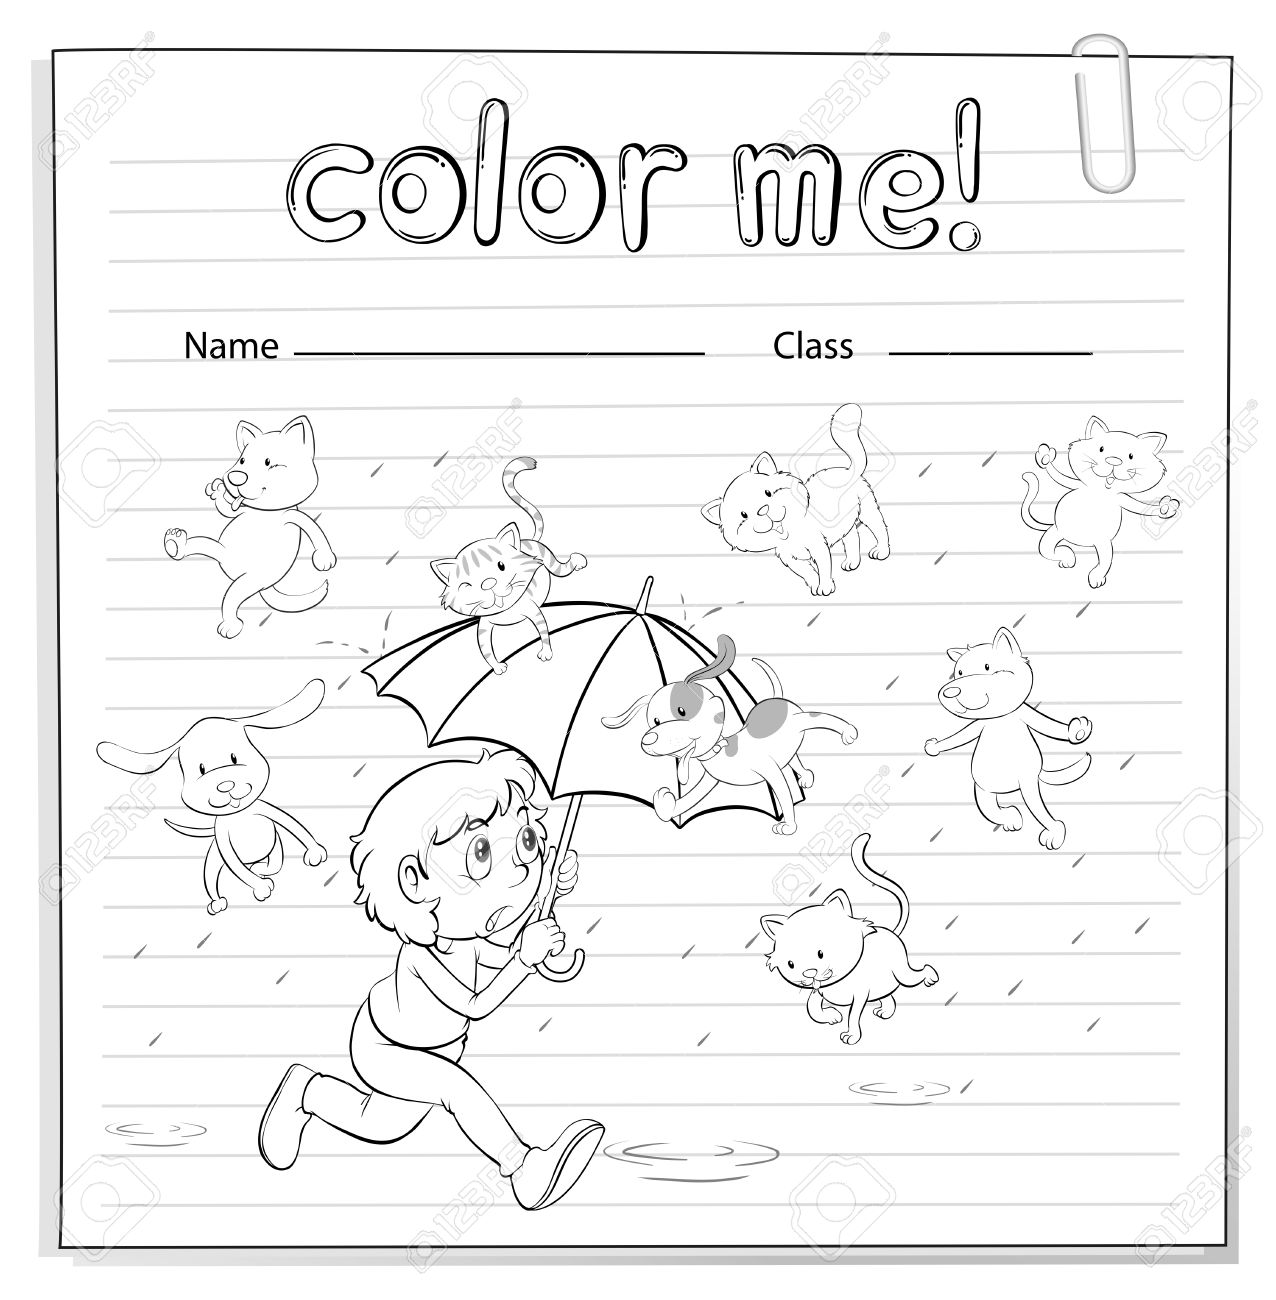 A Worksheet Showing A Rain With Cats And Dogs On A White – A Worksheet